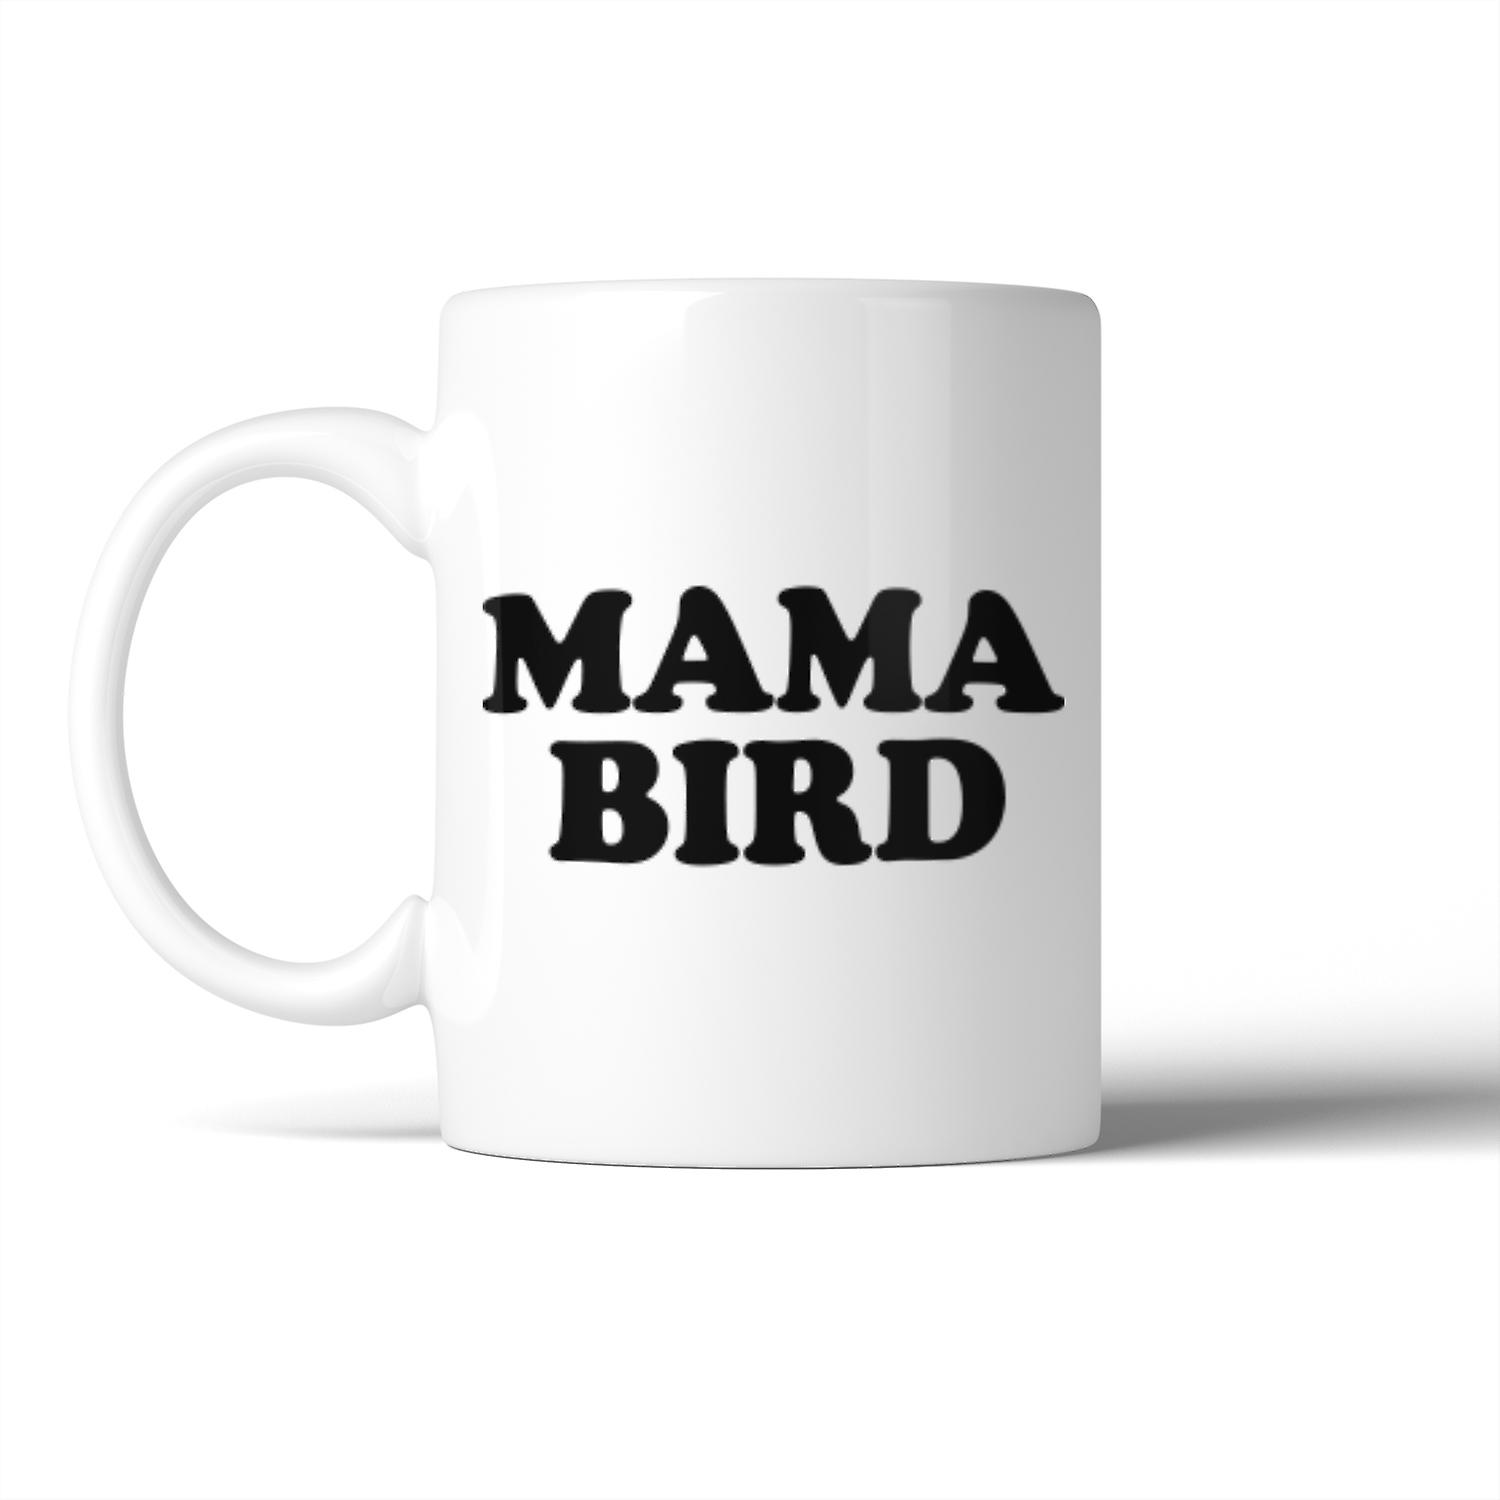 Day Mama Gift Bird For Mom Gifts Christmas Mother's Mother Mug UqSzVpMGL